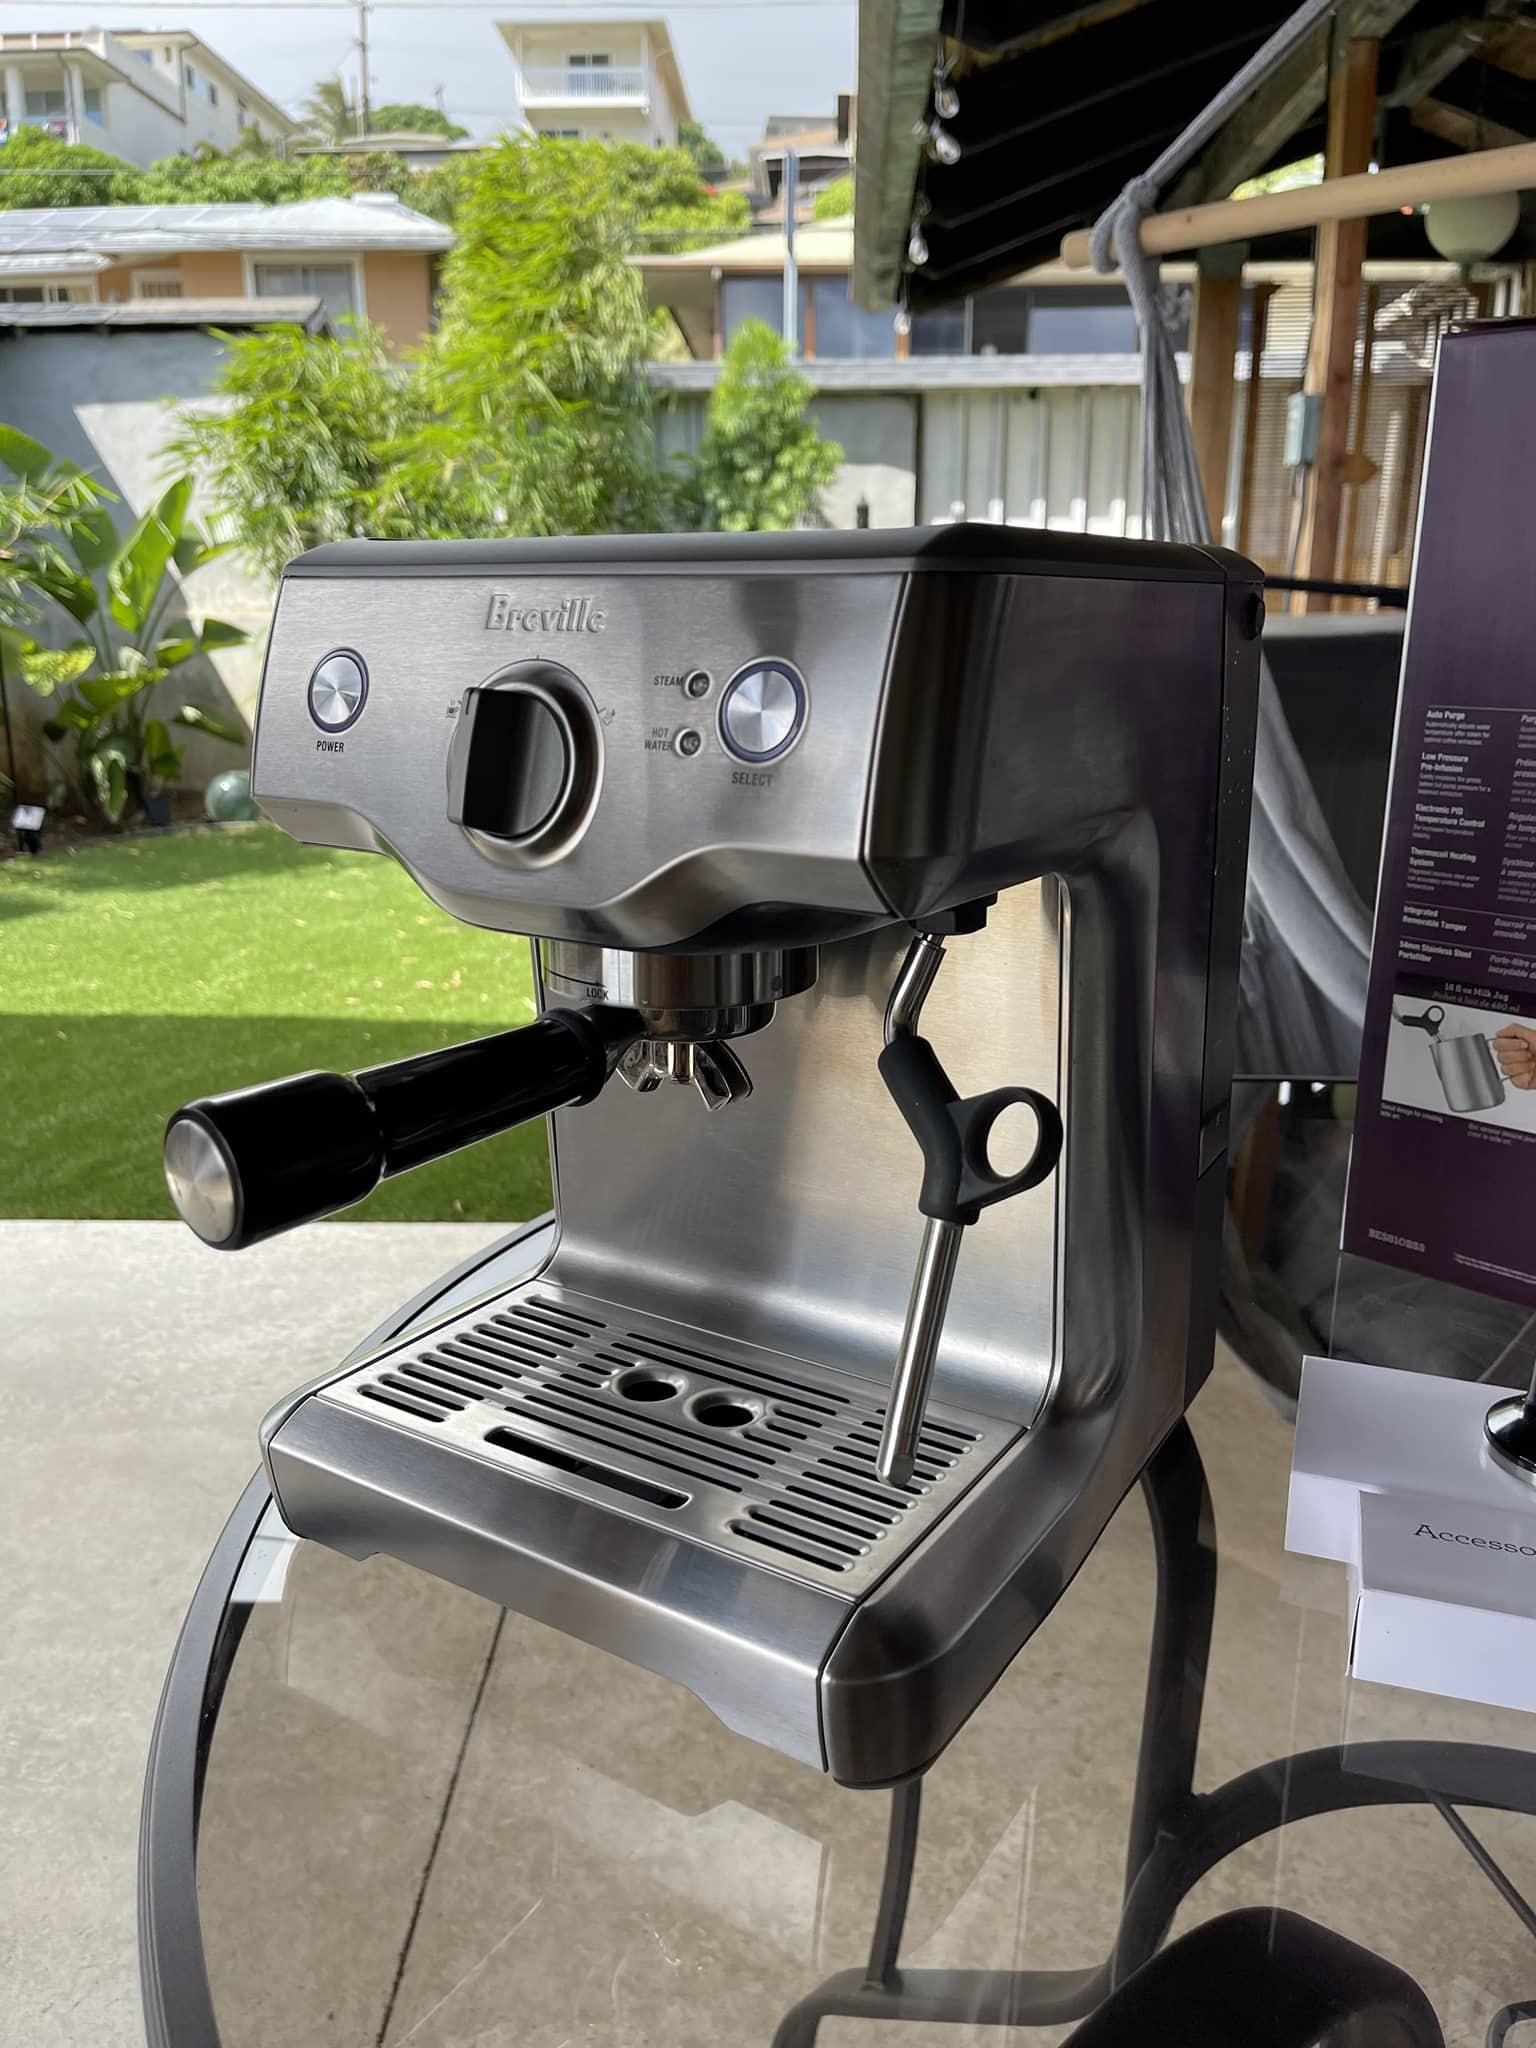 Breville Duo Temp Pro offers consistent espresso quality with nice crema